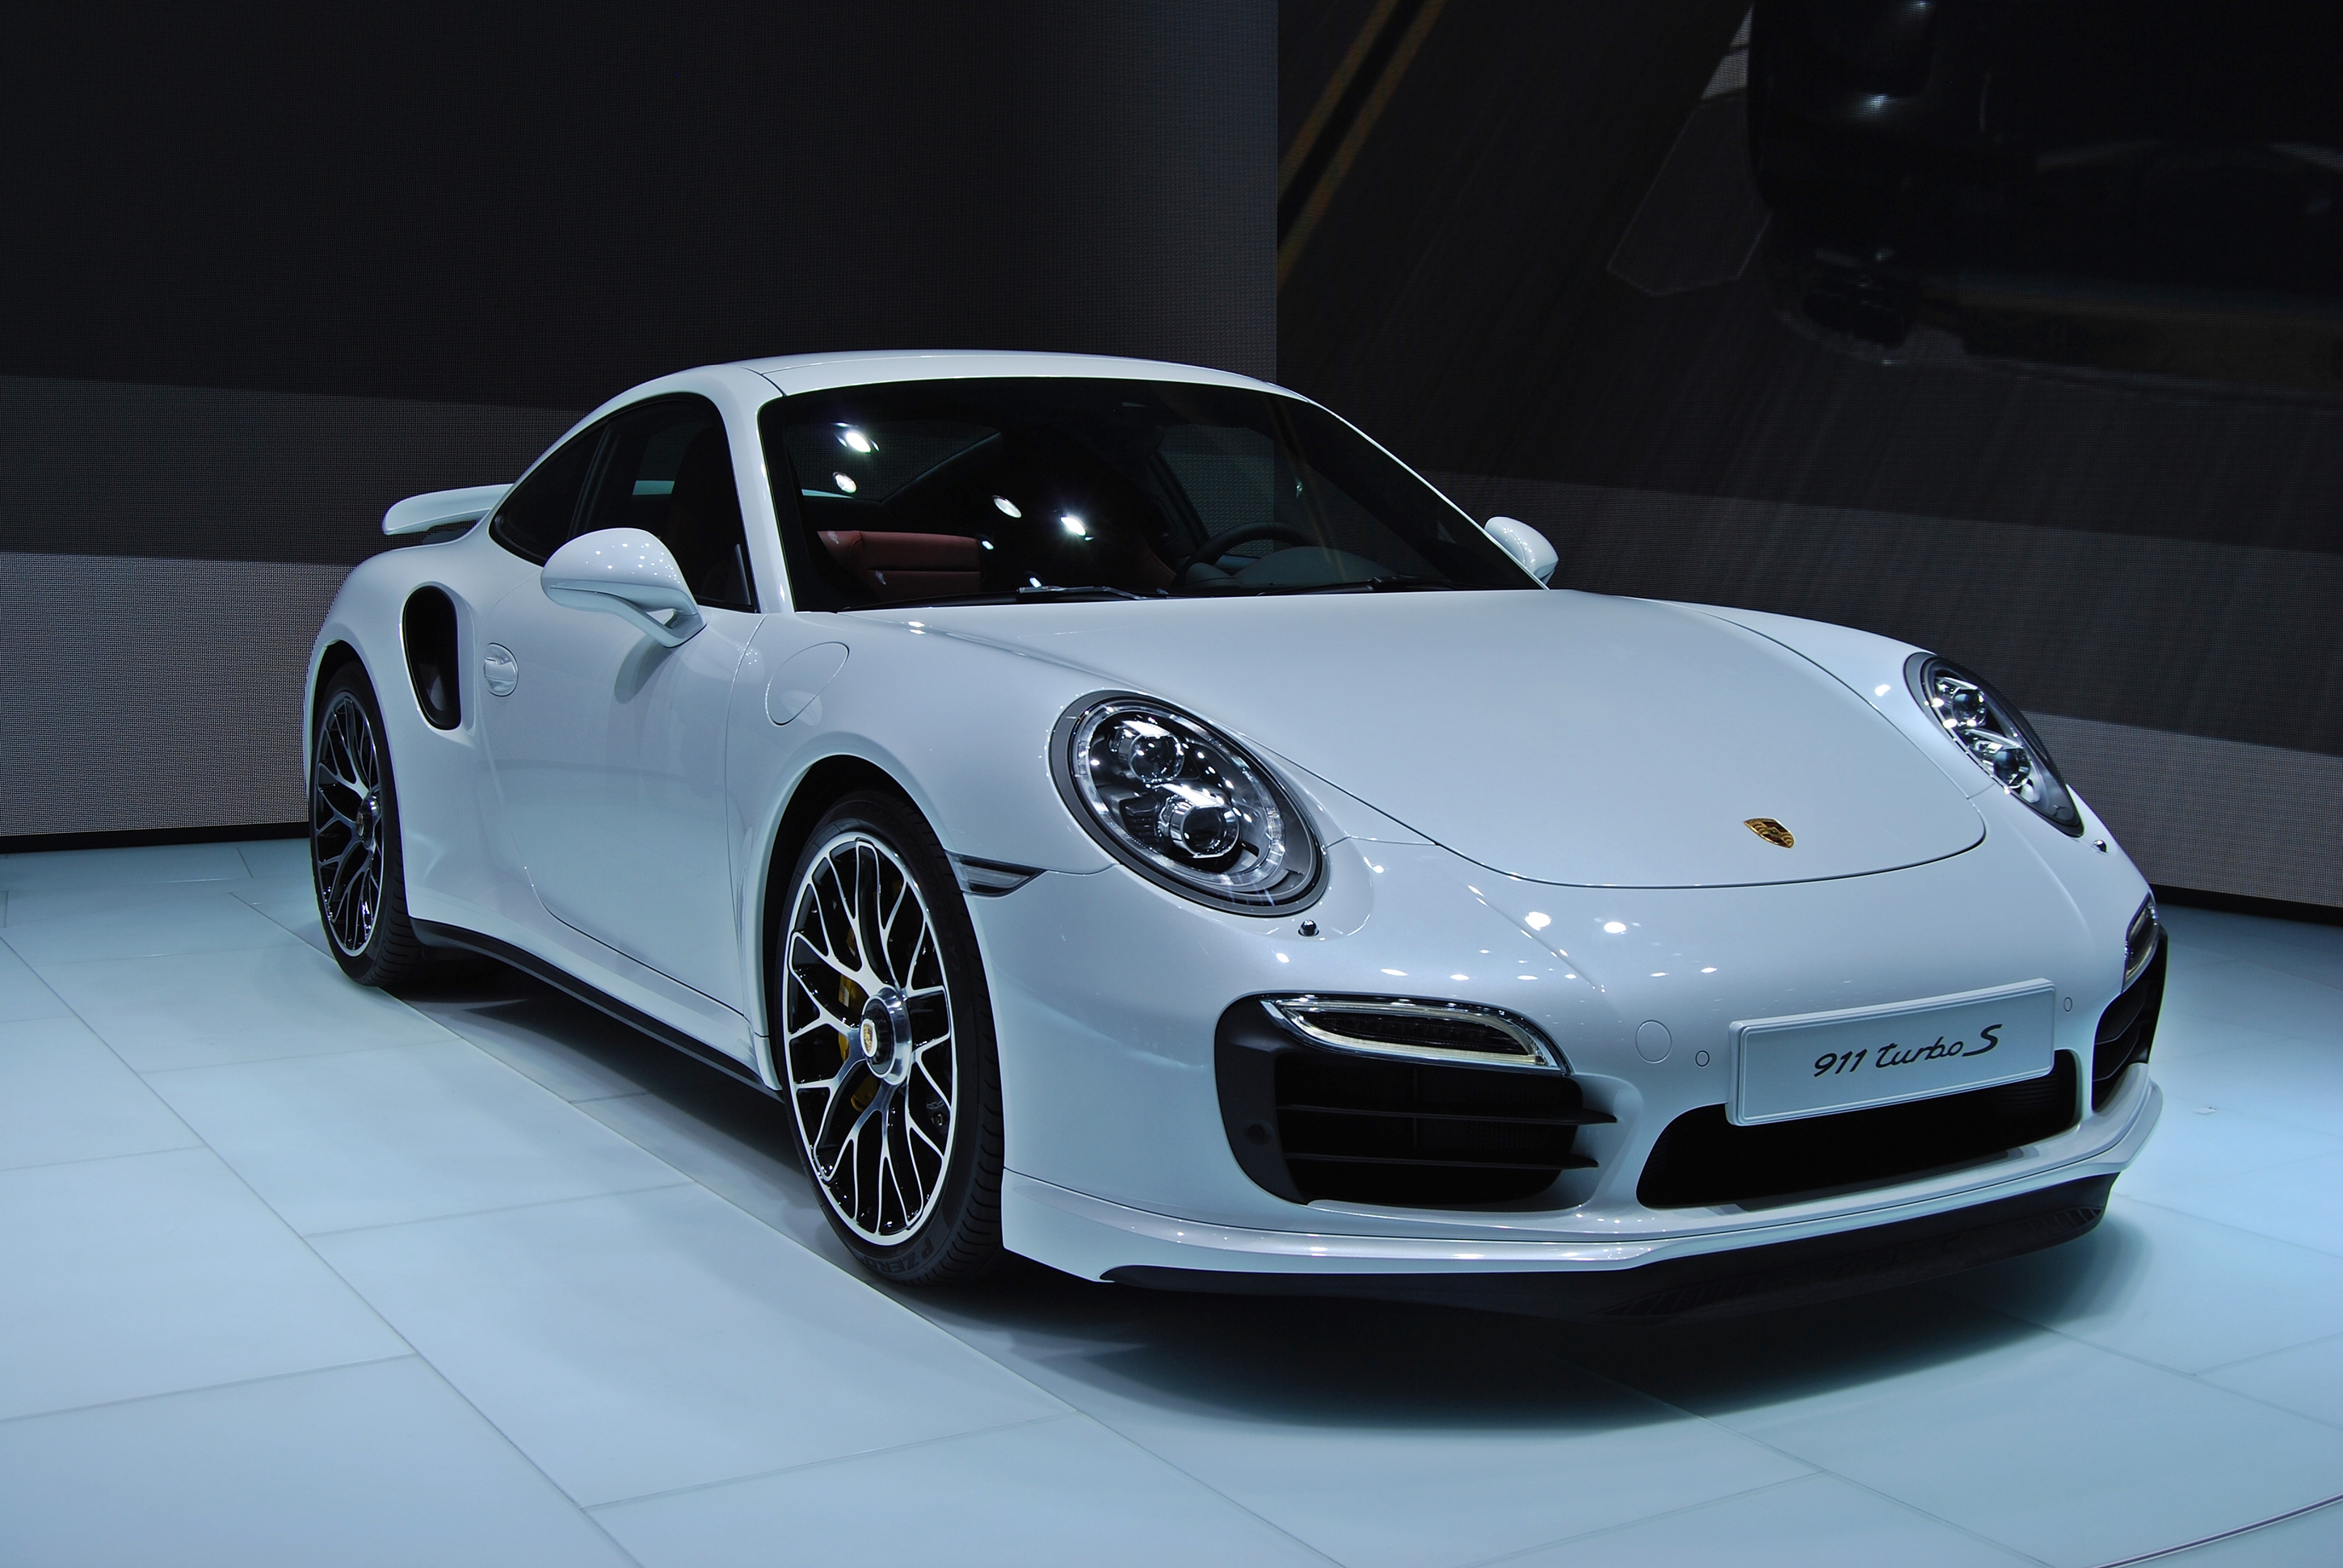 Porsche 911 Turbo 2013 White